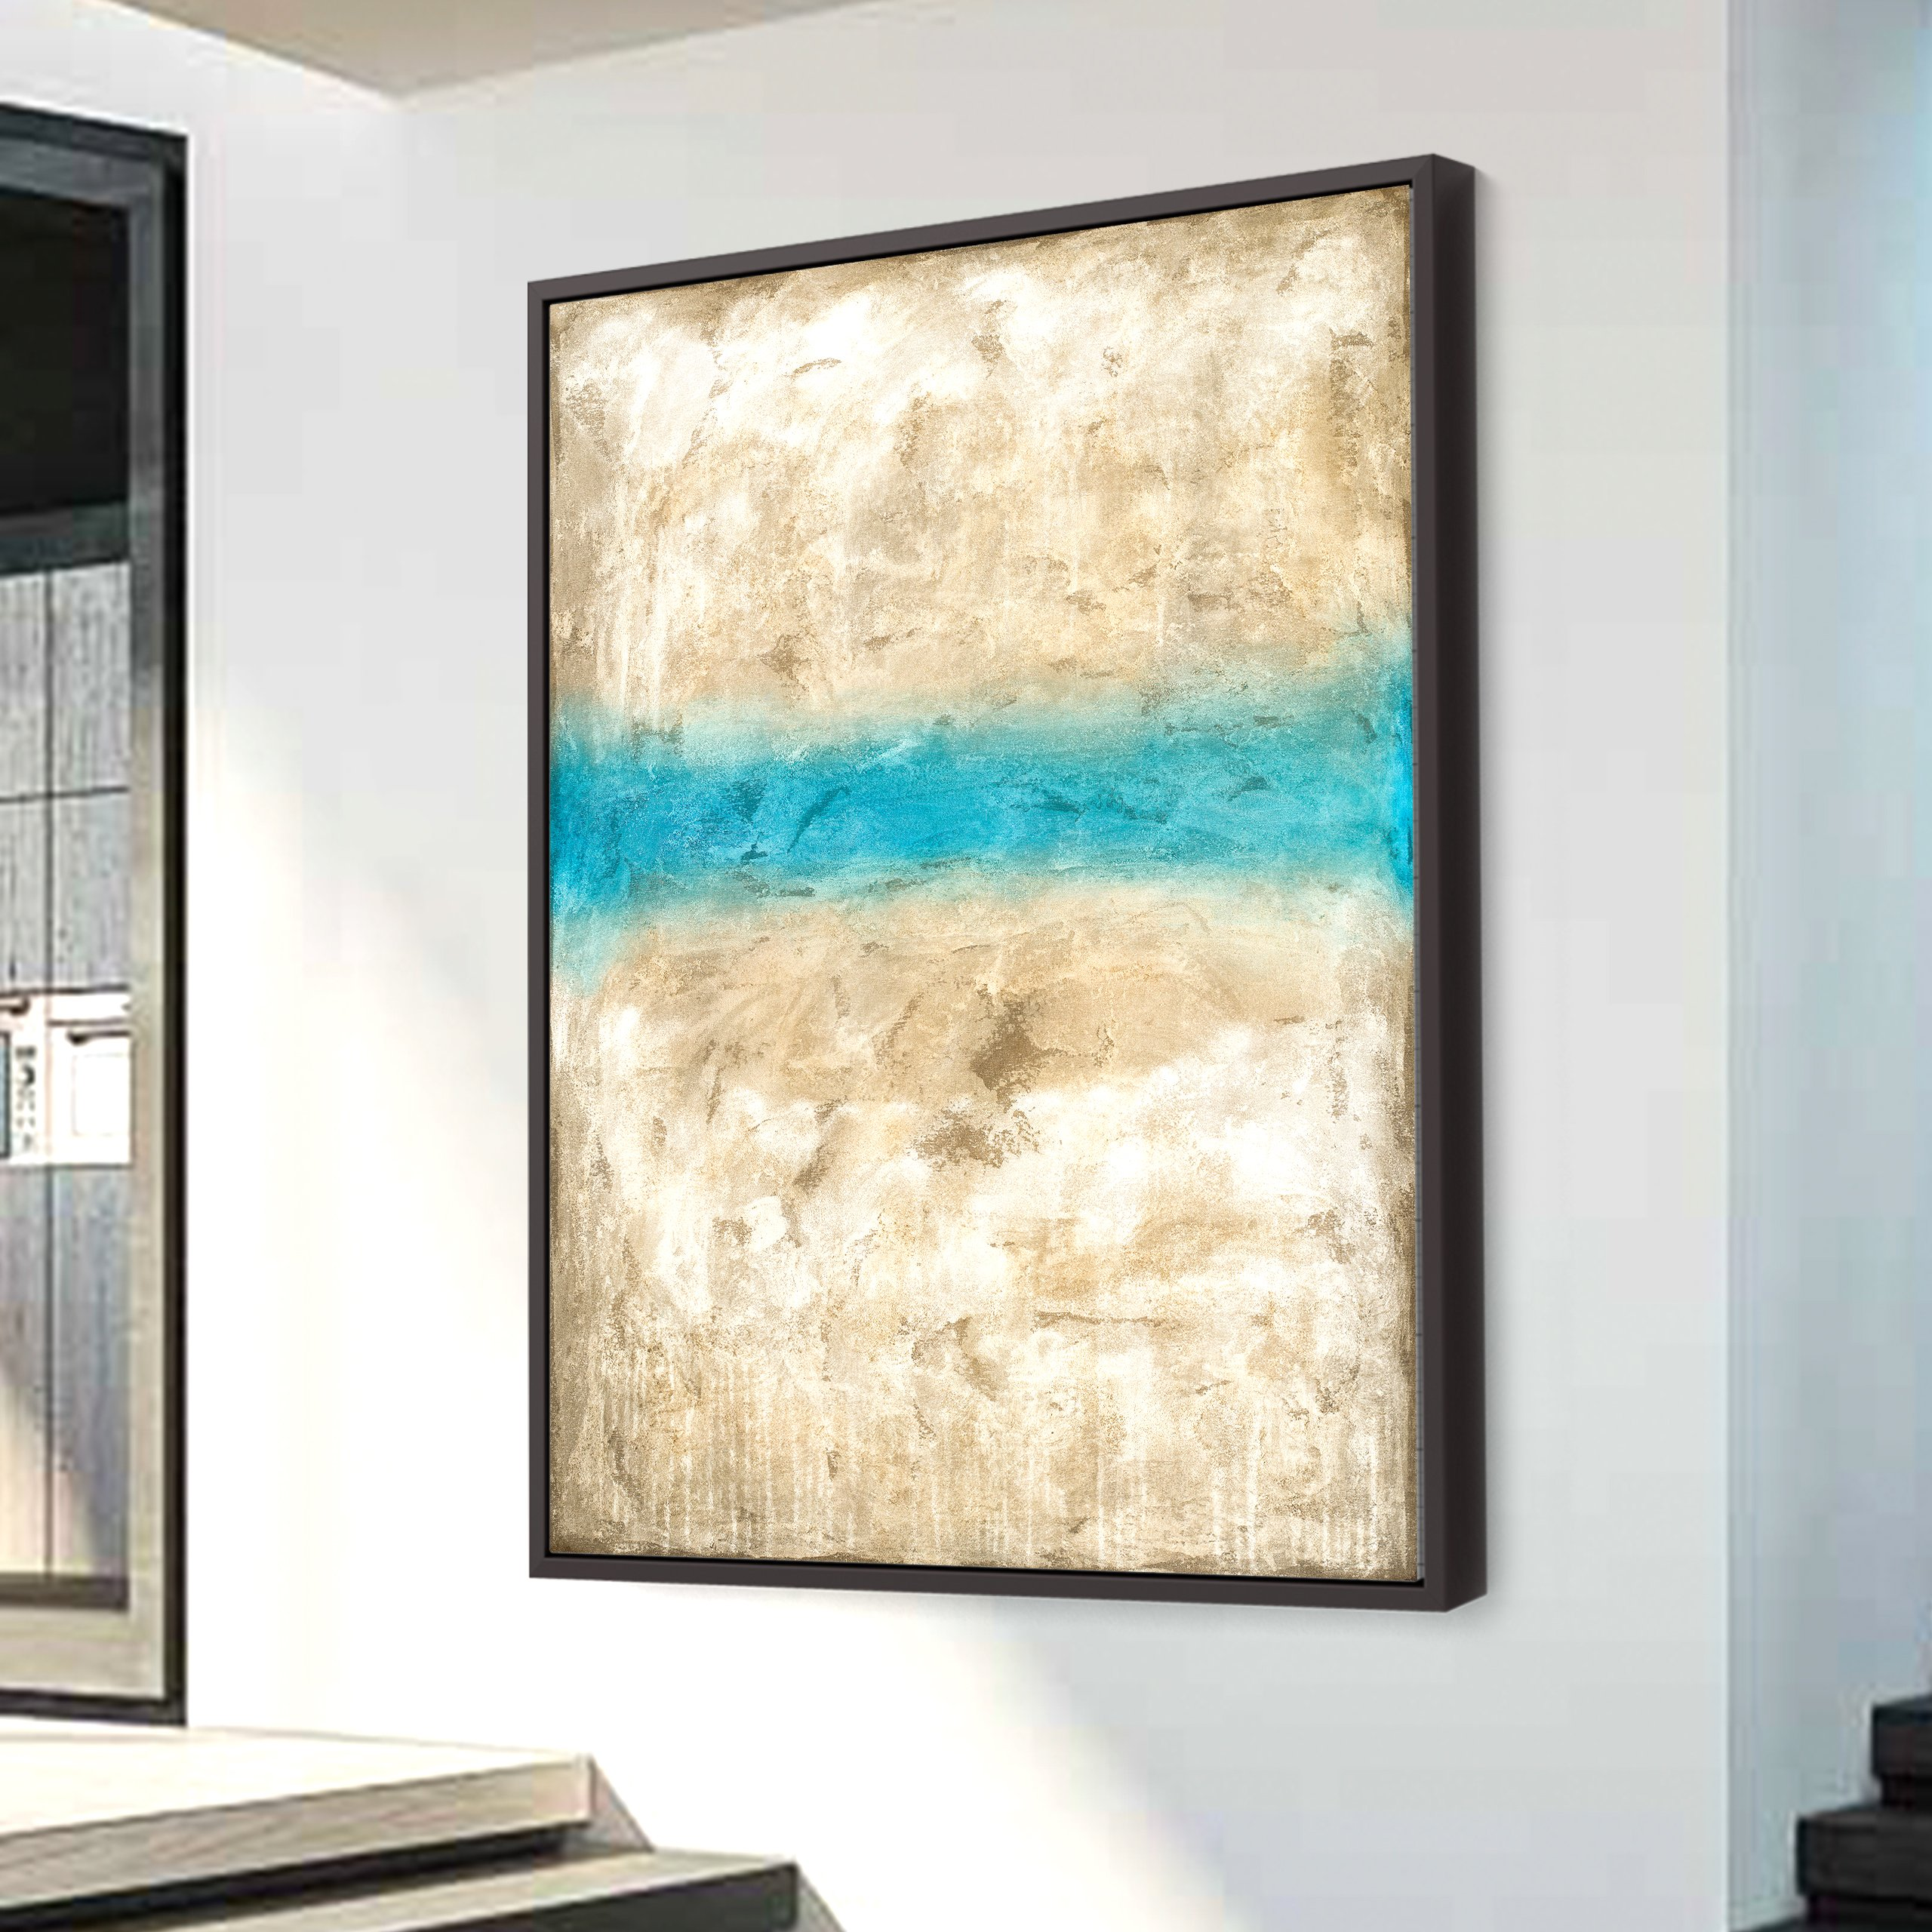 Duotone abstract painting on canvas for interior design and decor